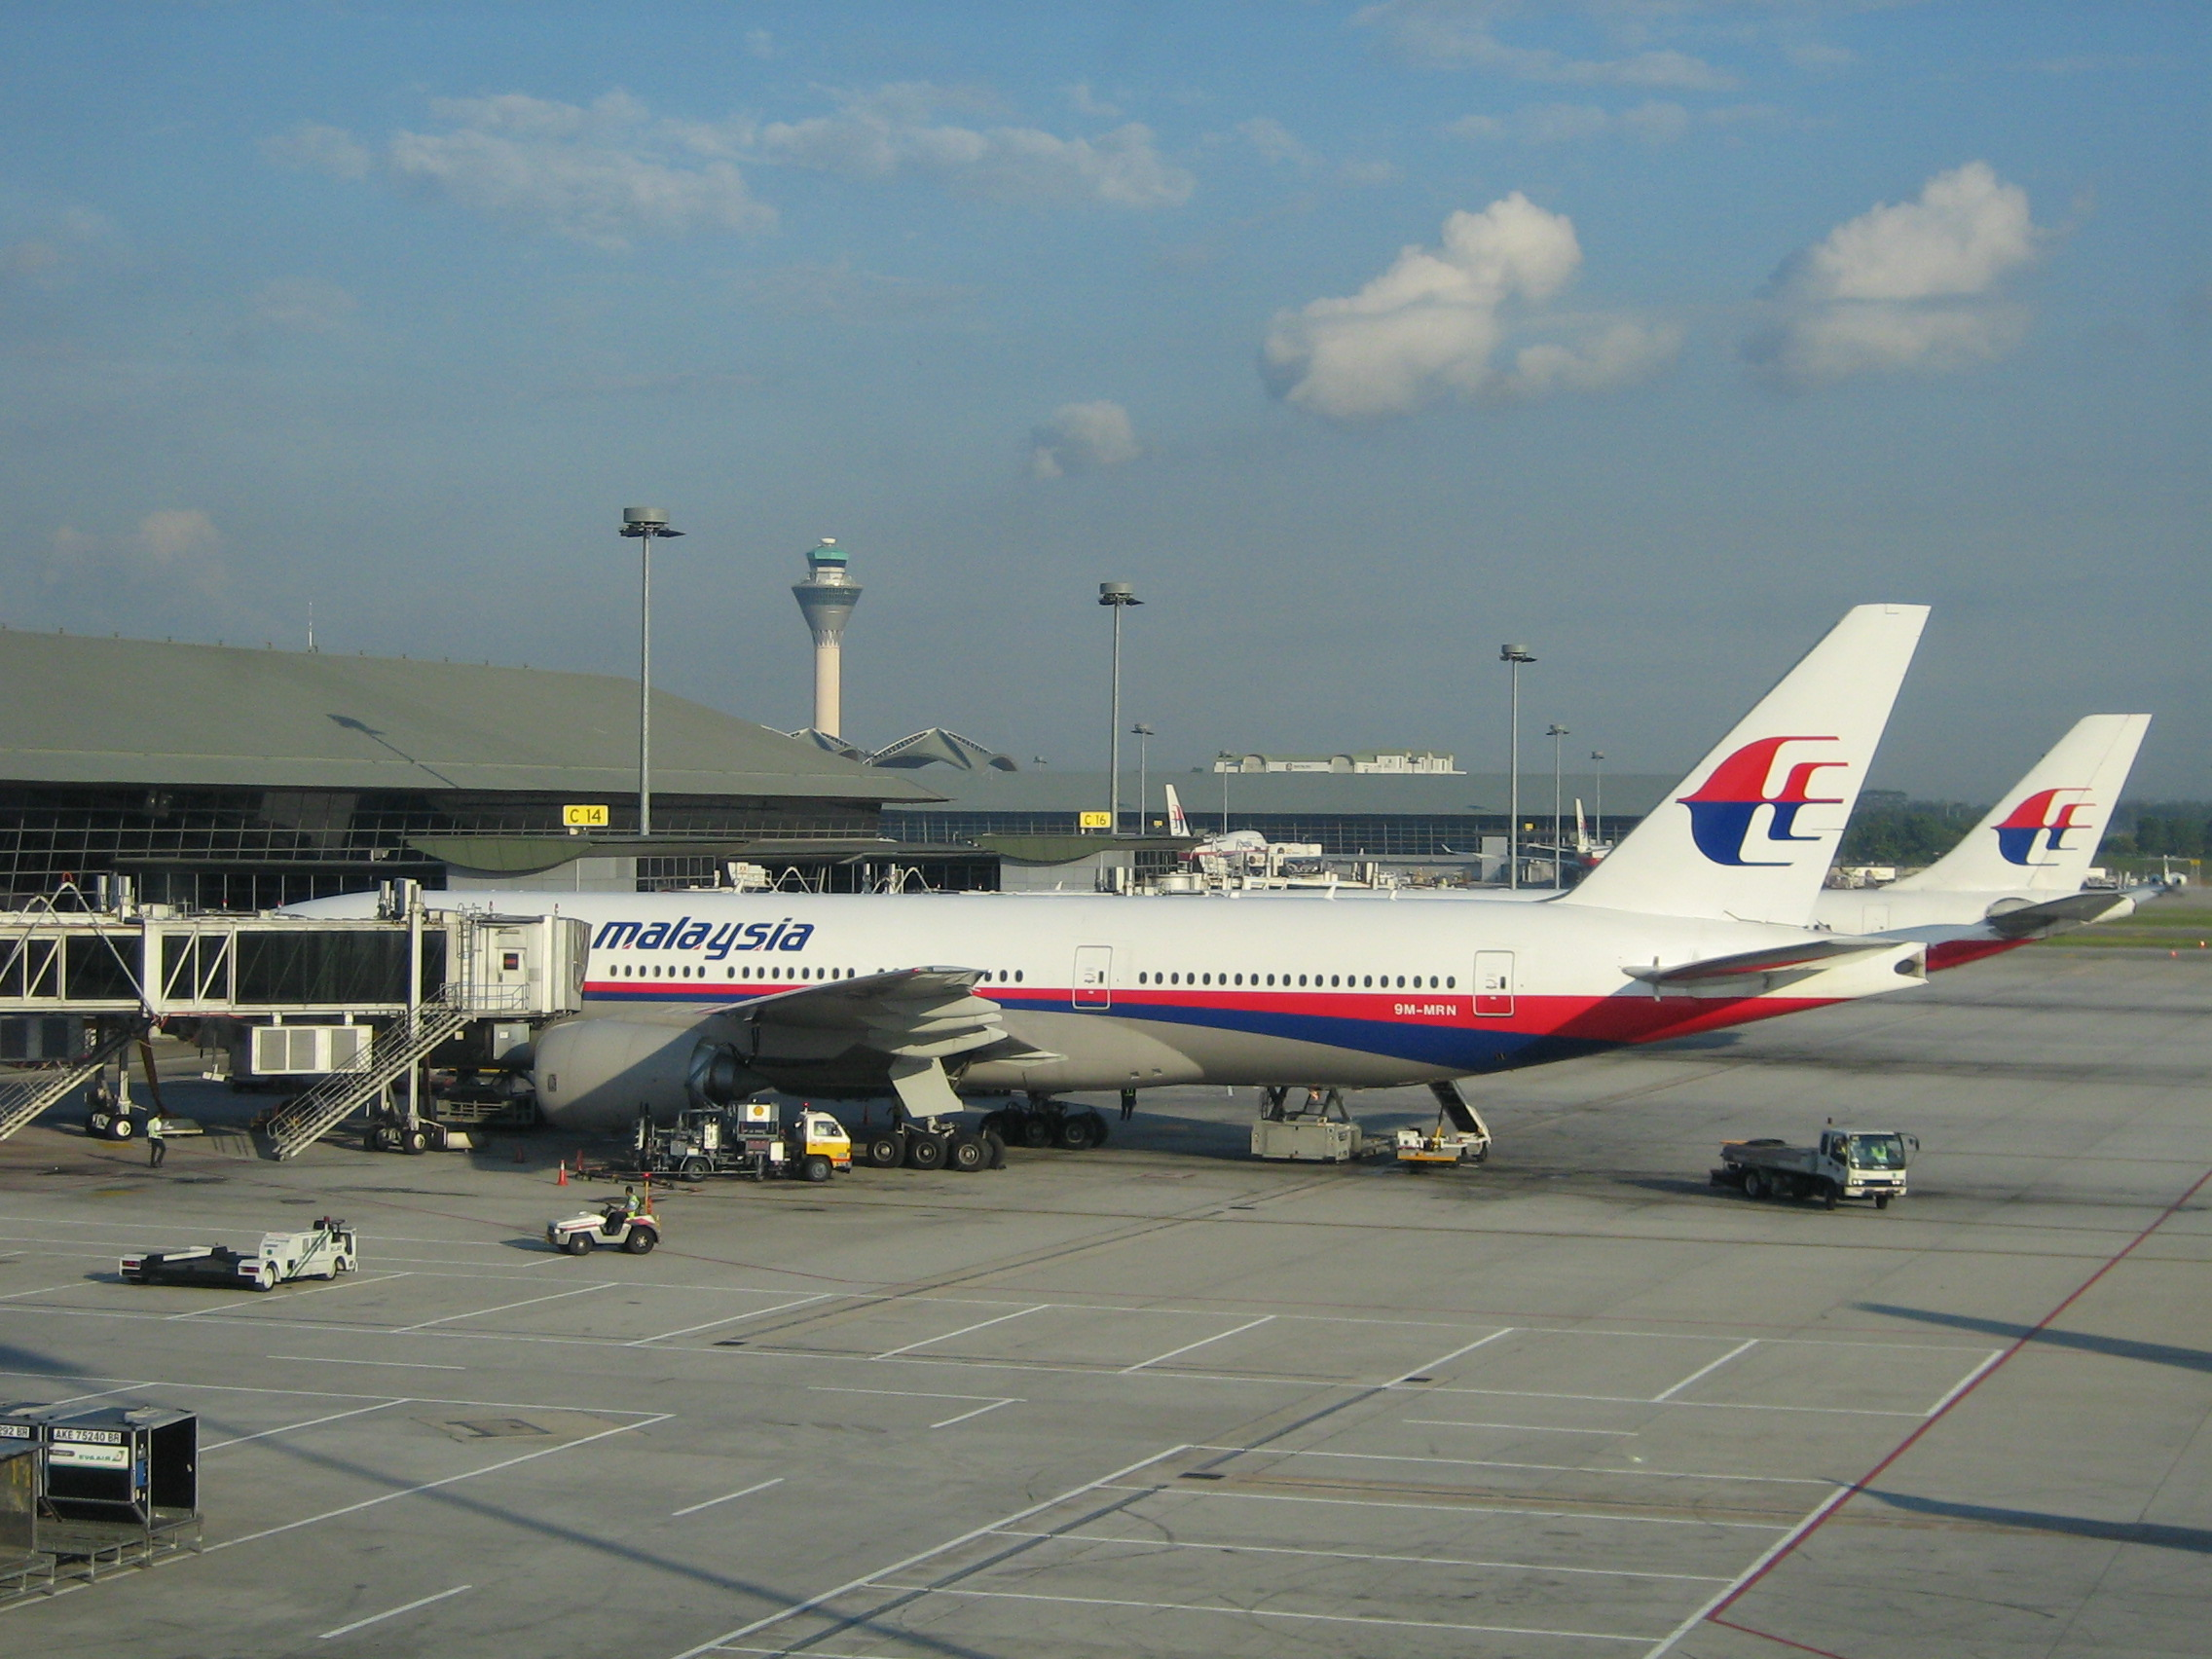 Malaysia Airlines airplanes at Kuala Lumpur International Airport, in front a Boeing 777. (Credit: Craig)